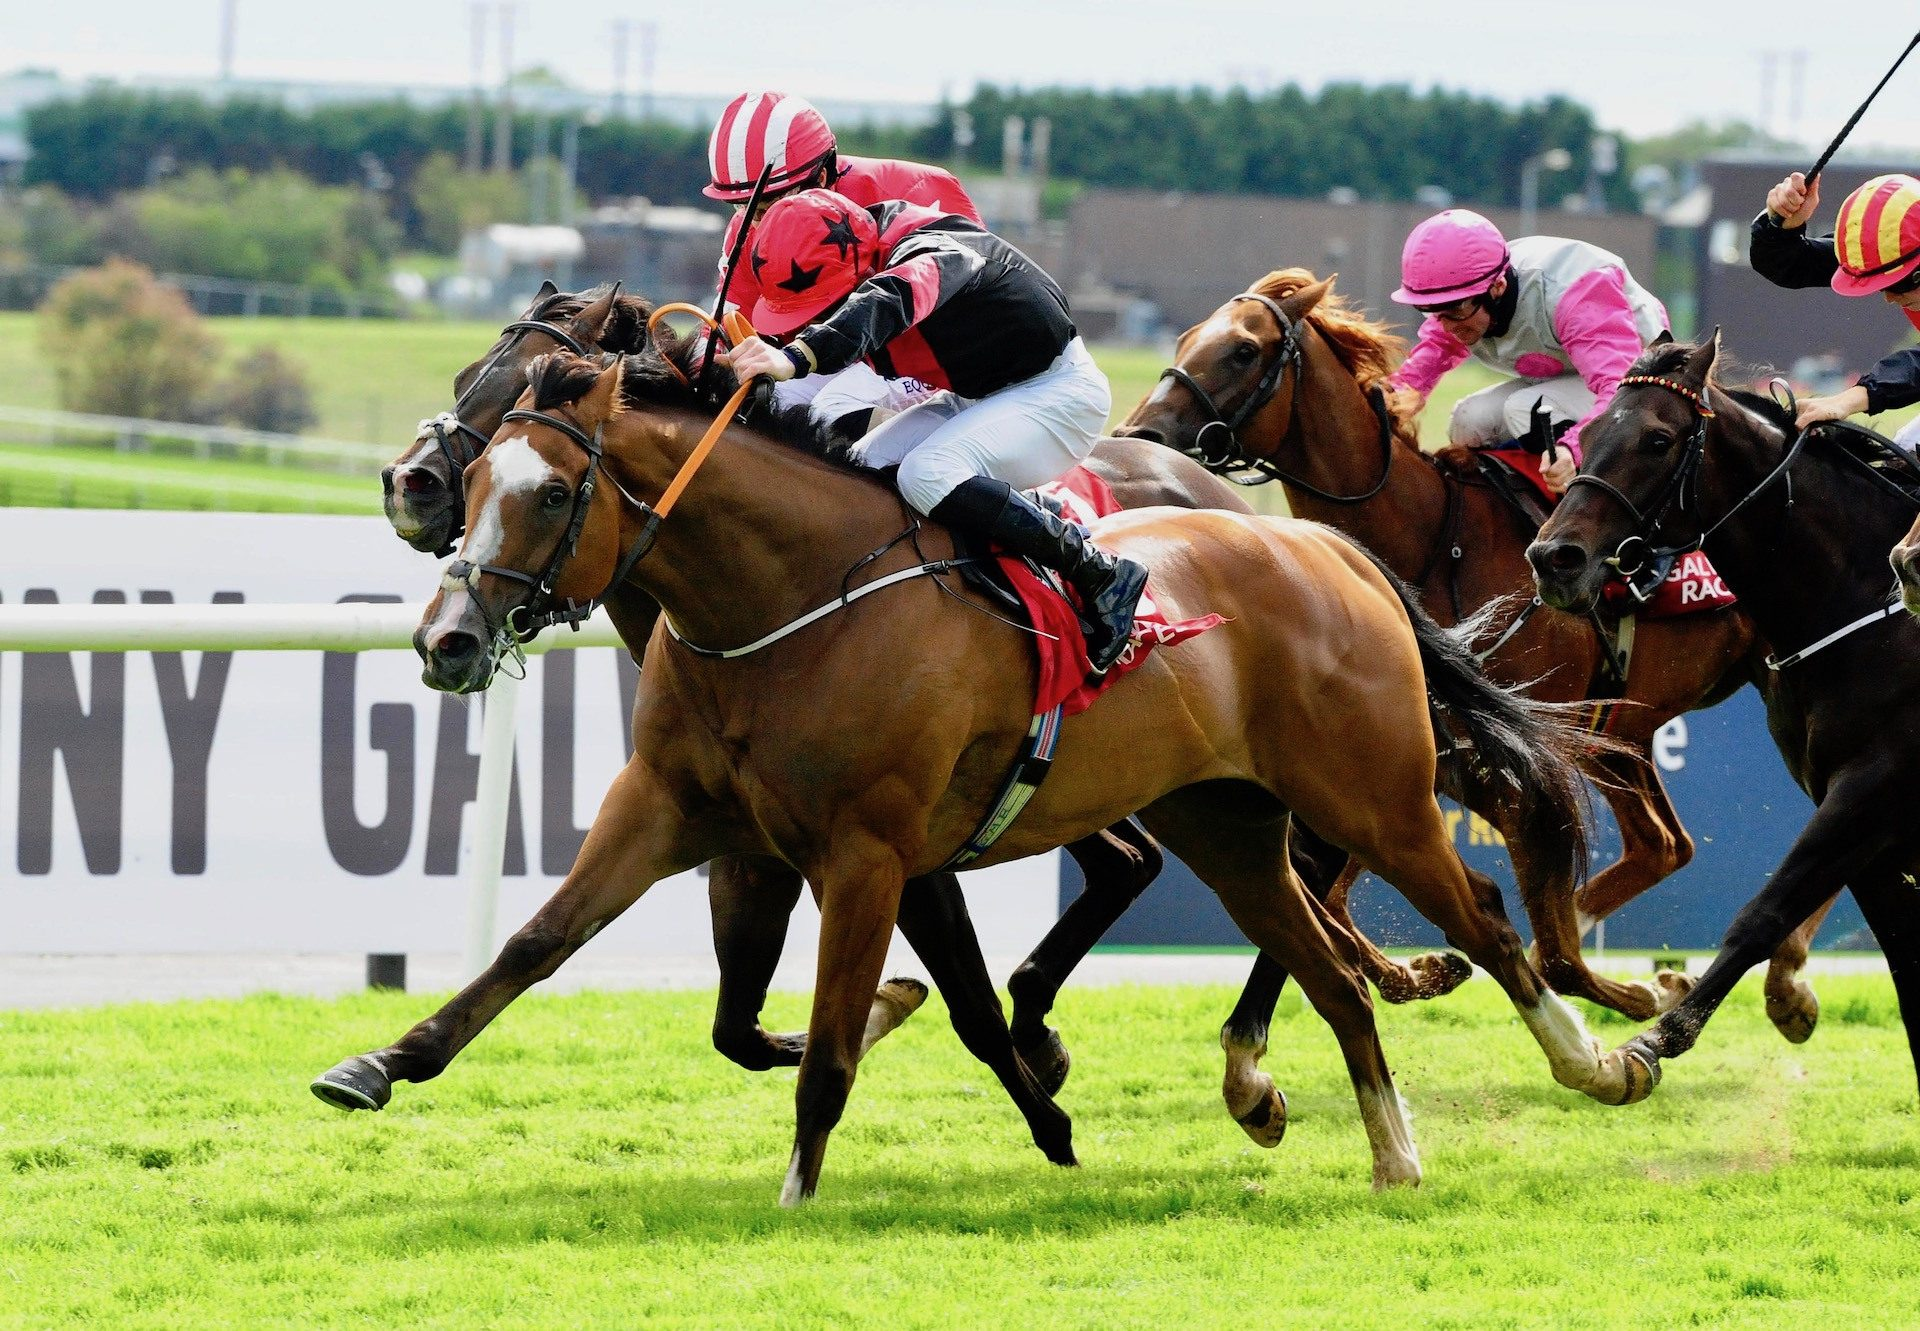 Current Option (Camelot) Wins The Ahonoora Handicap At Galway